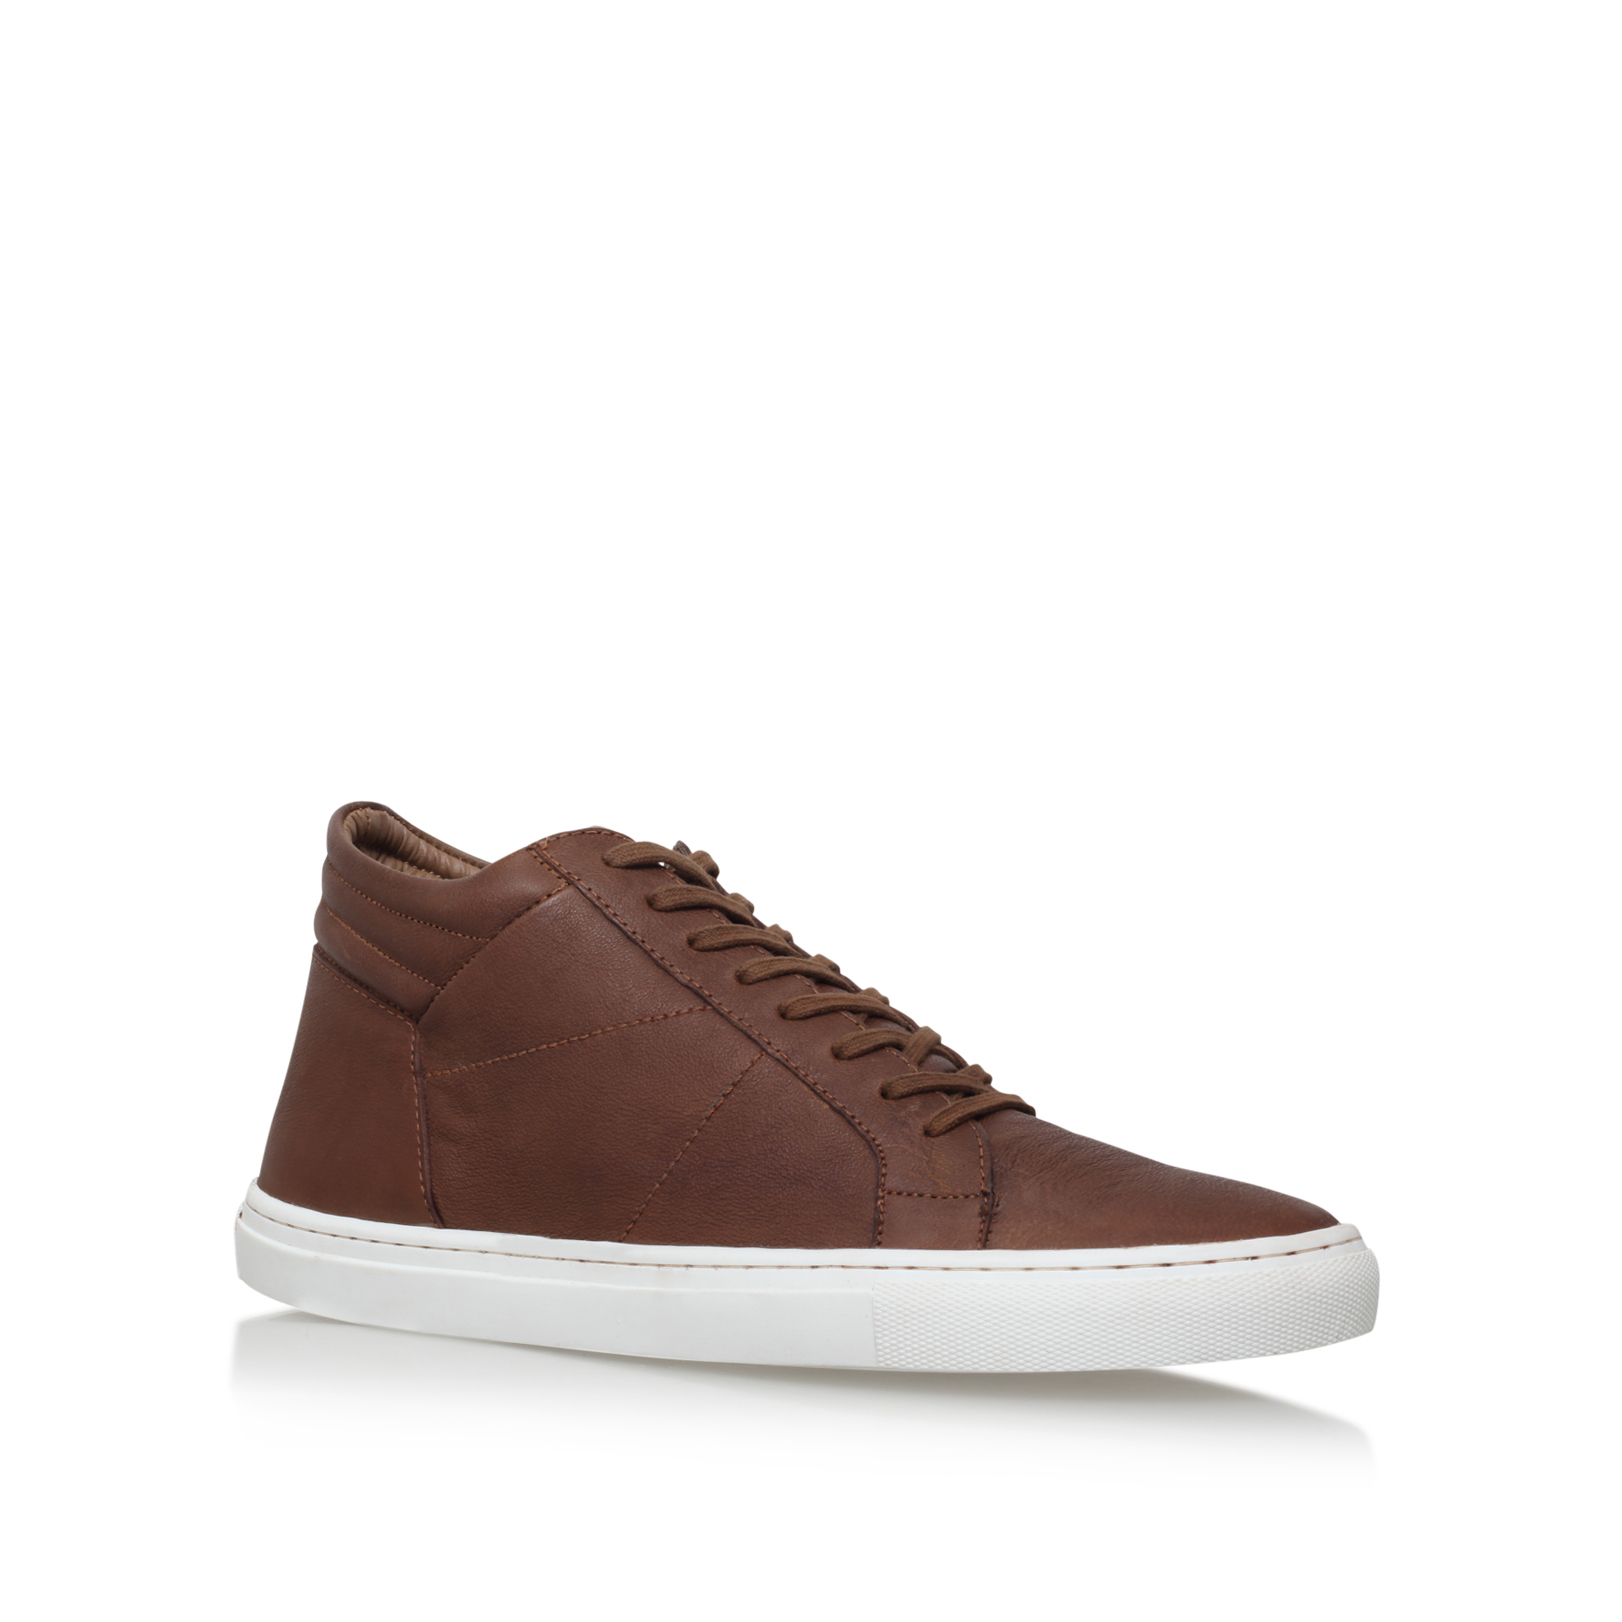 hoddesdon men Shop hoddesdon kg kurt geiger hoddesdon black leather sneaker by kg kurt geiger at official shoeaholics site.